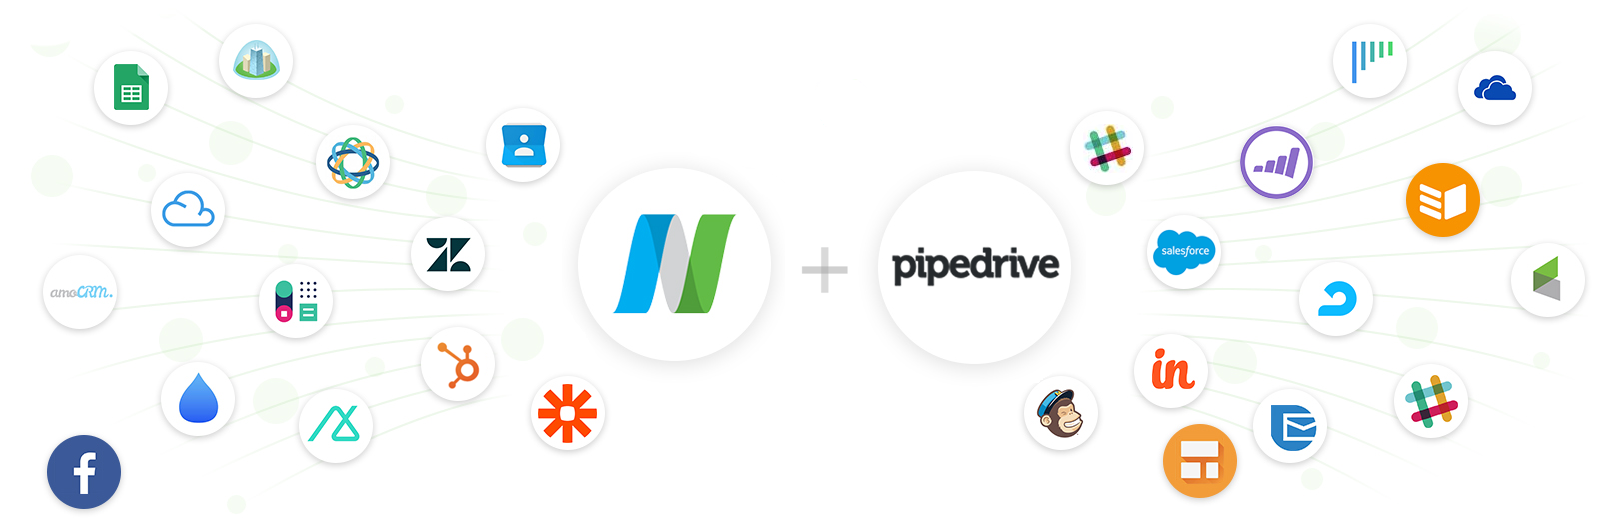 Pipedrive-Integration-VoIP-Phone-System-NUACOM